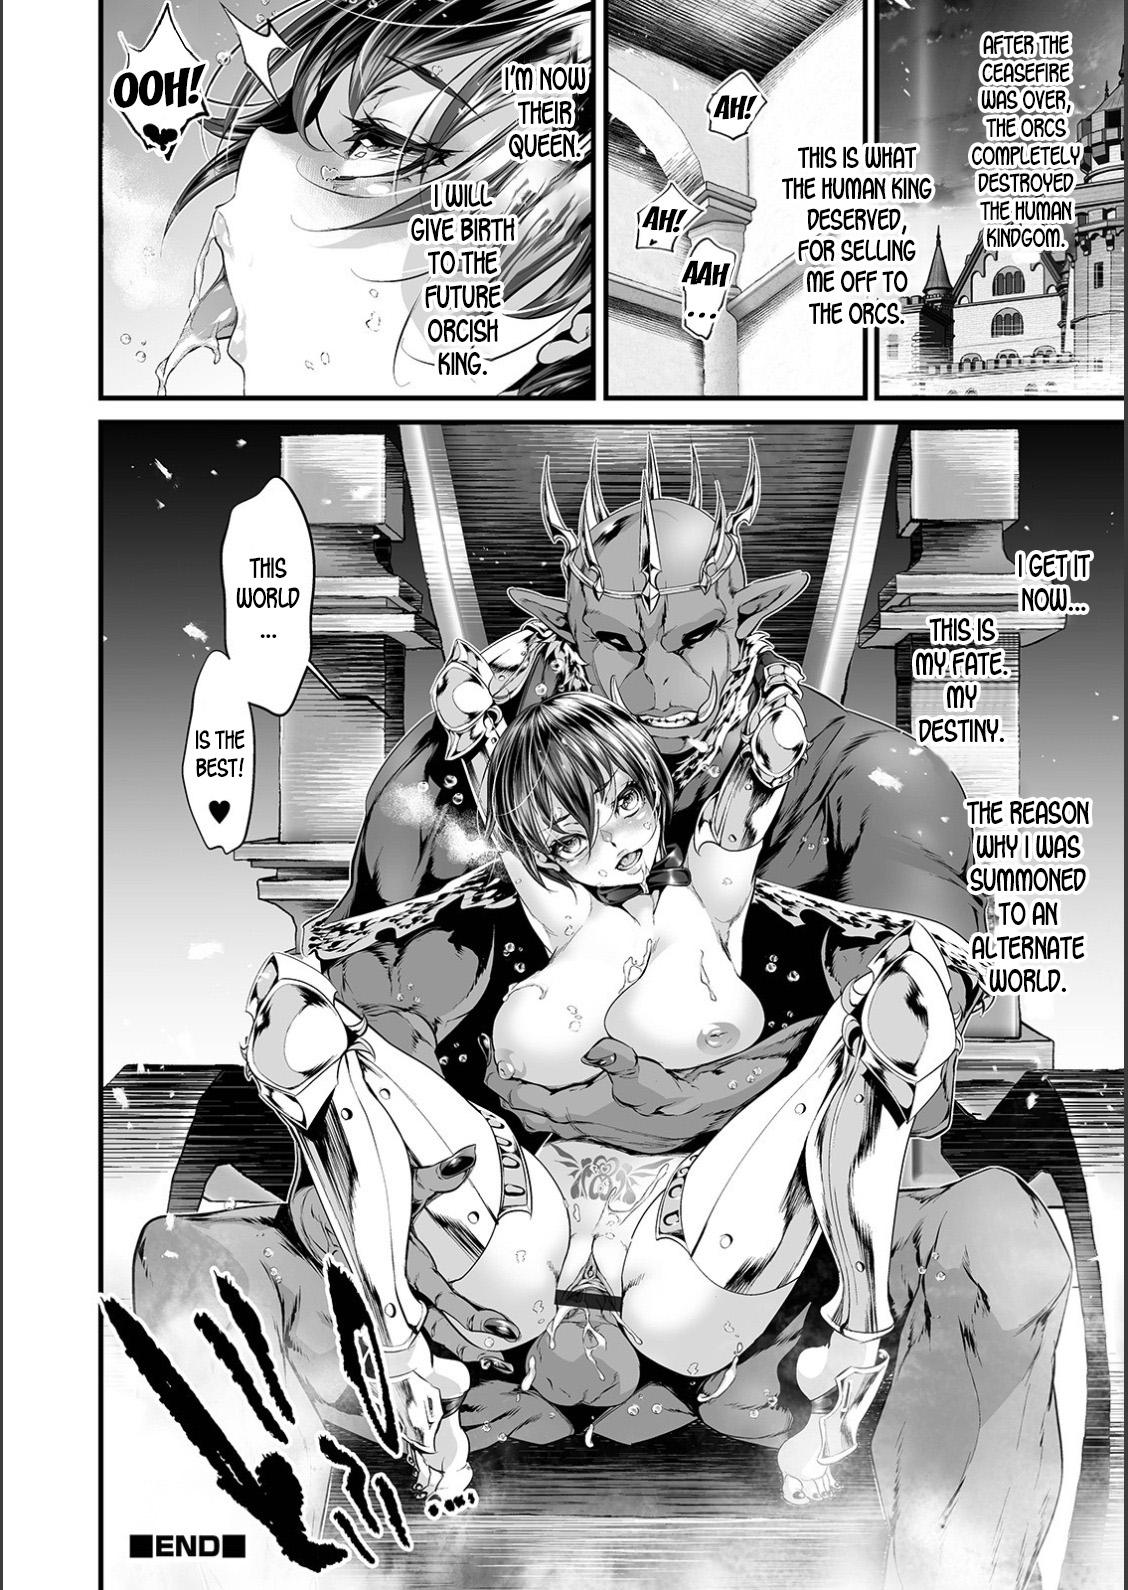 Nyotaika Eiyuu Orc Chinpo Haiboku Kitan | The Mysterious Story of a Genderbent Hero being Defeated by Orc Cocks 13